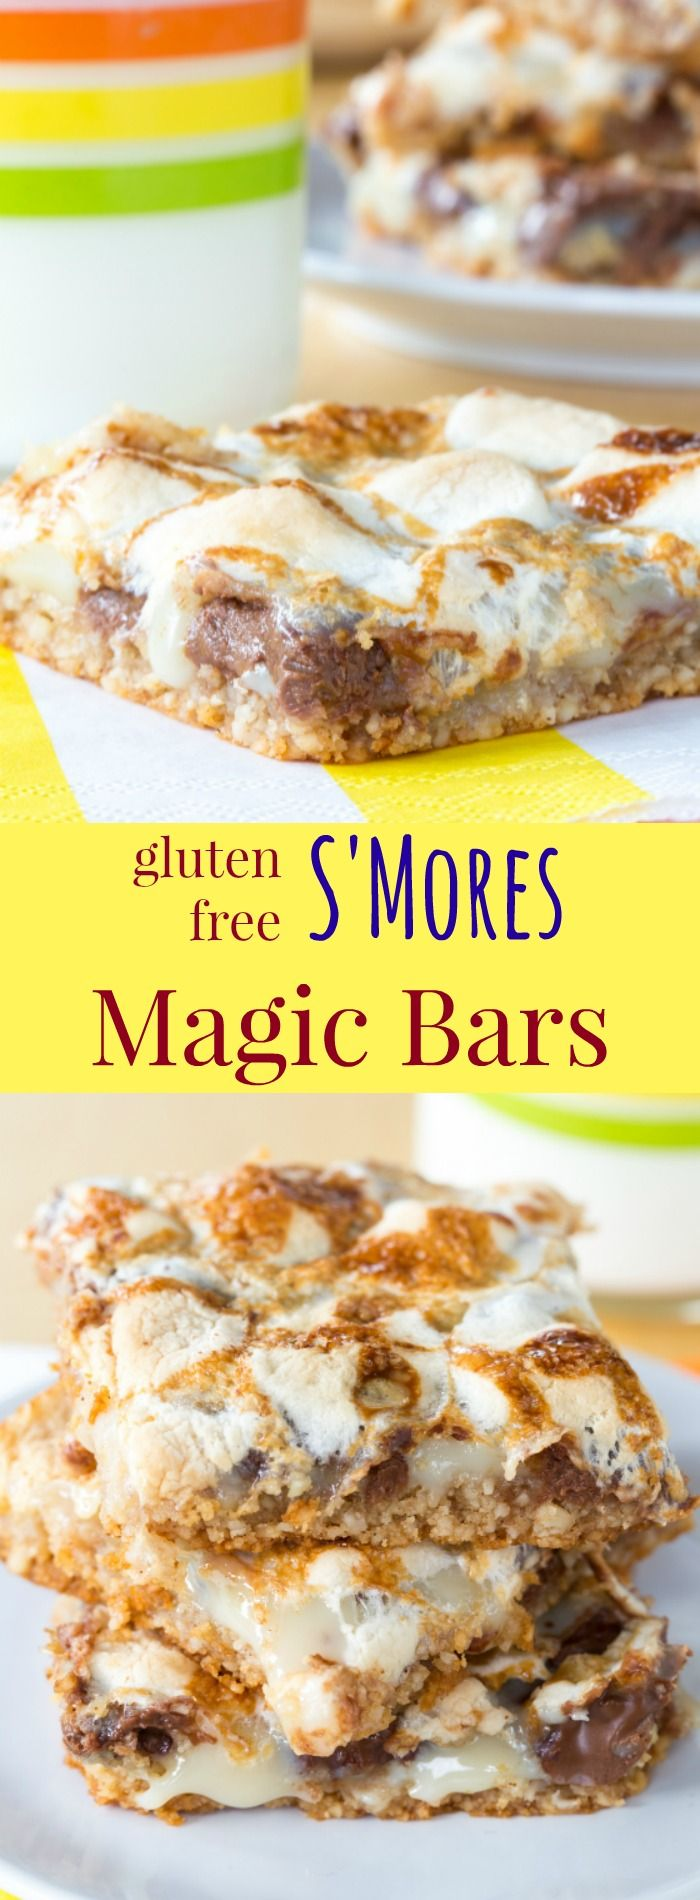 Gluten Free S'Mores Magic Bars - combine two favorite dessert recipes into one gooey treat filled with chocolate and marshmallows. And the mock flourless graham cracker crust is so easy! | cupcakesandkalechips.com